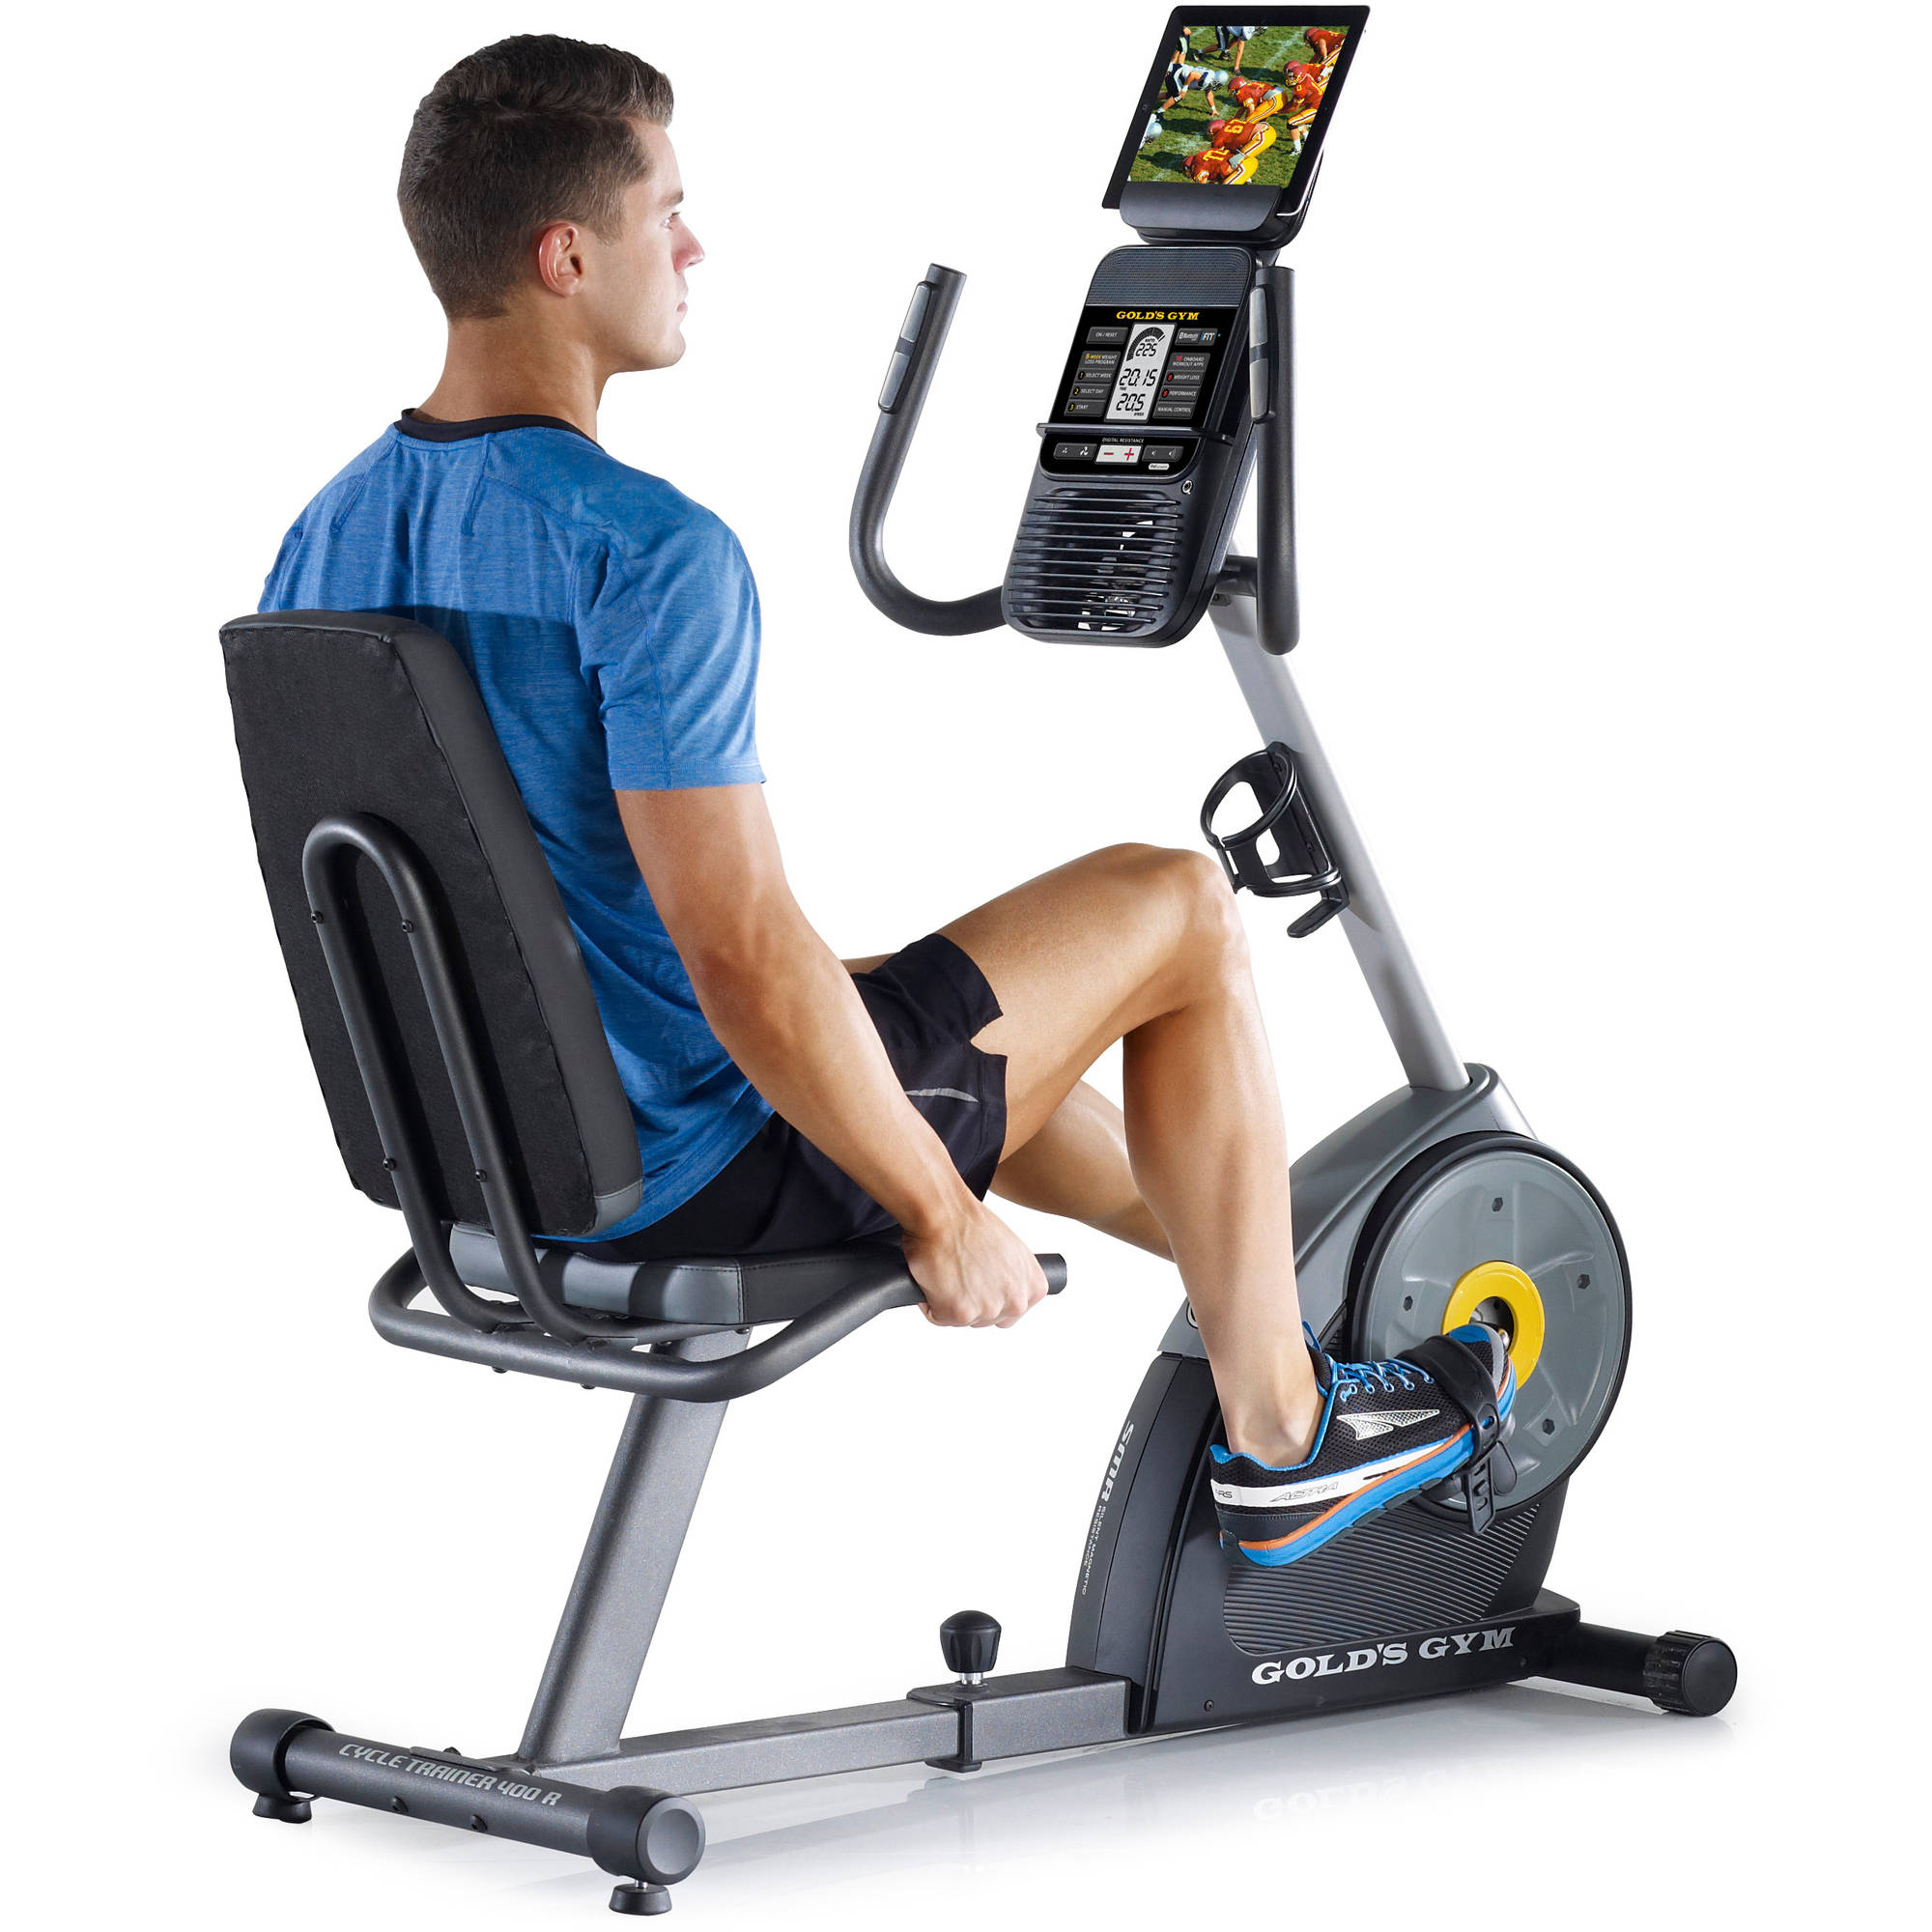 Workout Warehouse Exercise Bikes Gold's Gym Cycle Trainer 400 Ri Exercise Bike  gallery image 3